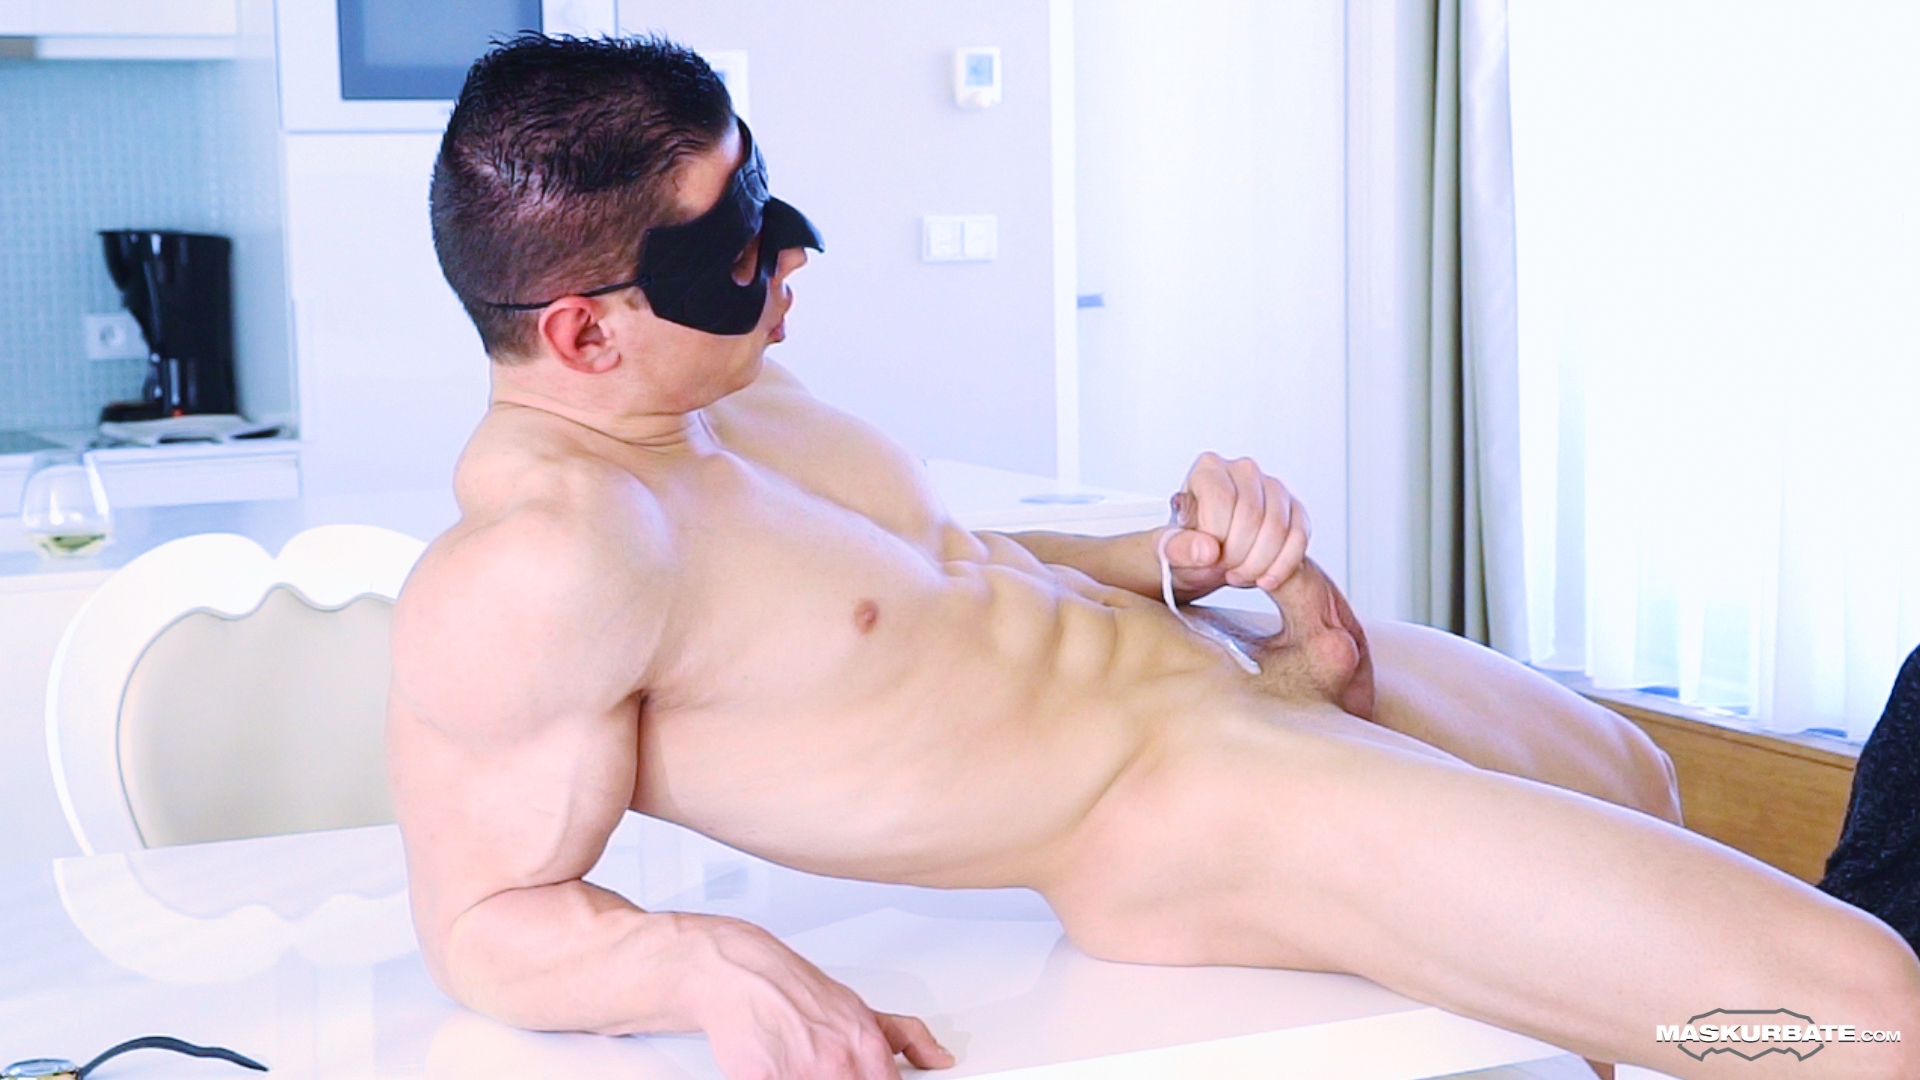 Andrea and muscleboy - 3 part 9